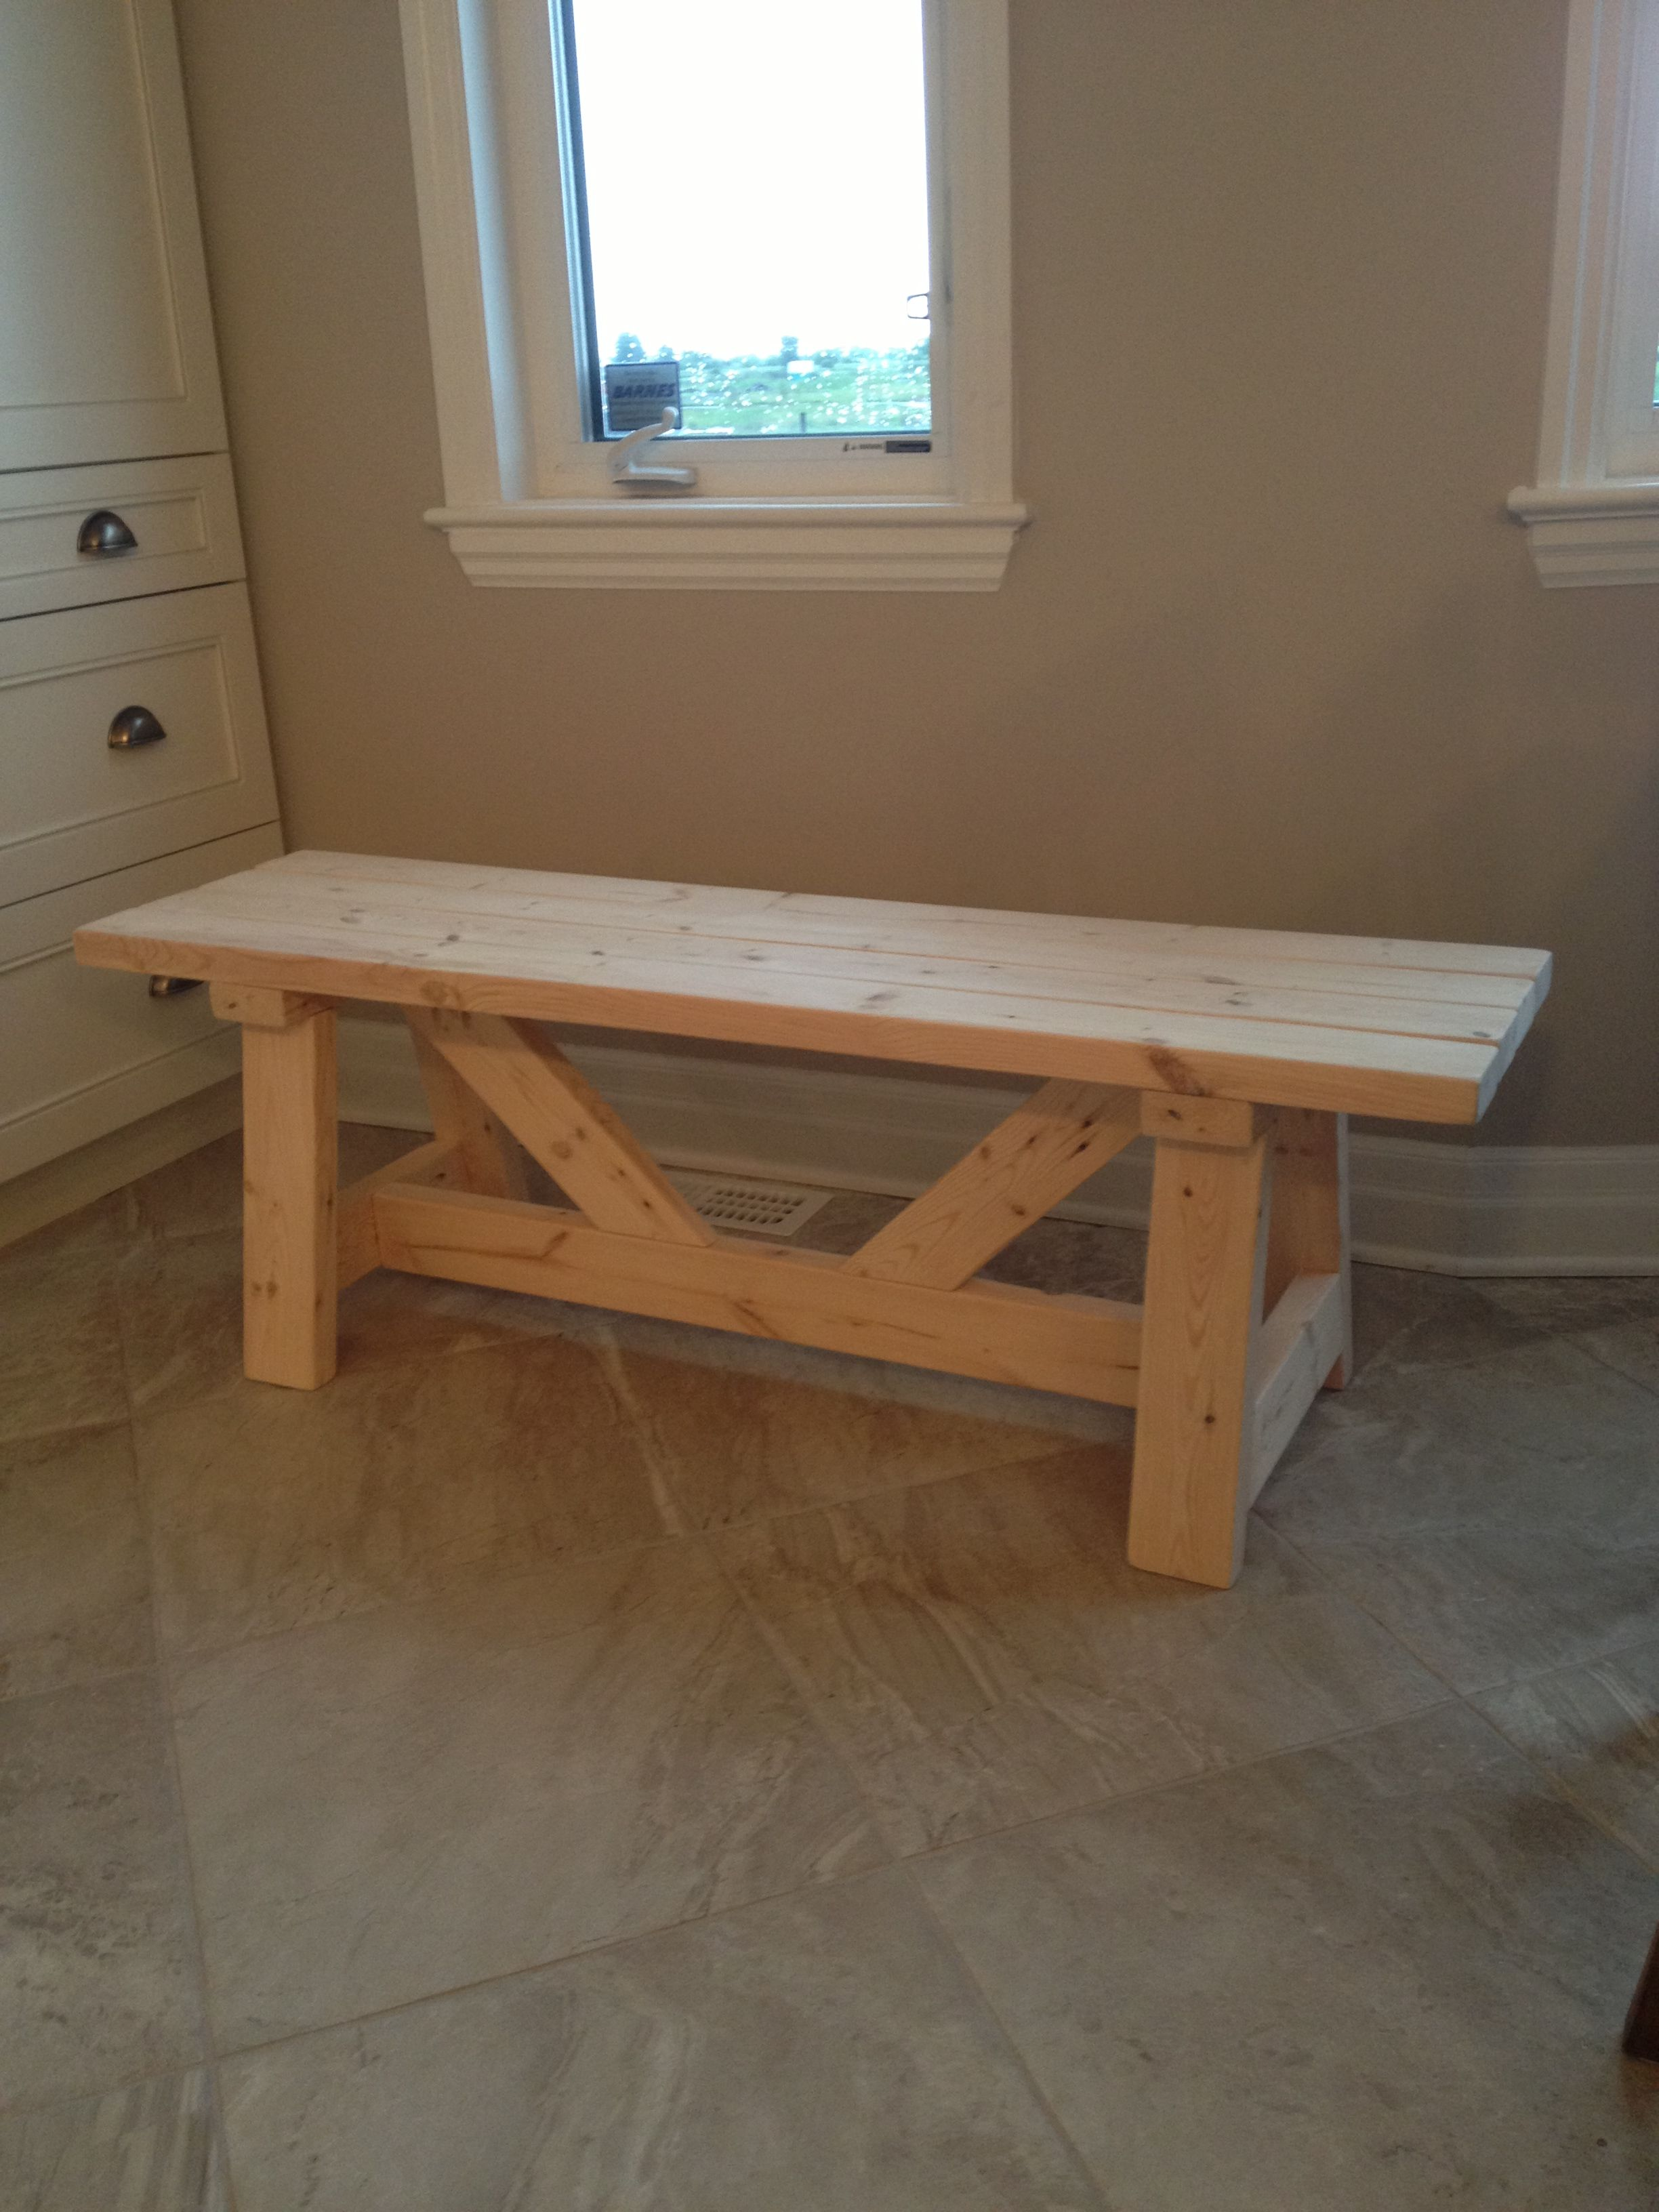 Farmhouse Bench In 1 Day Home Projects Furniture Diy Home Diy